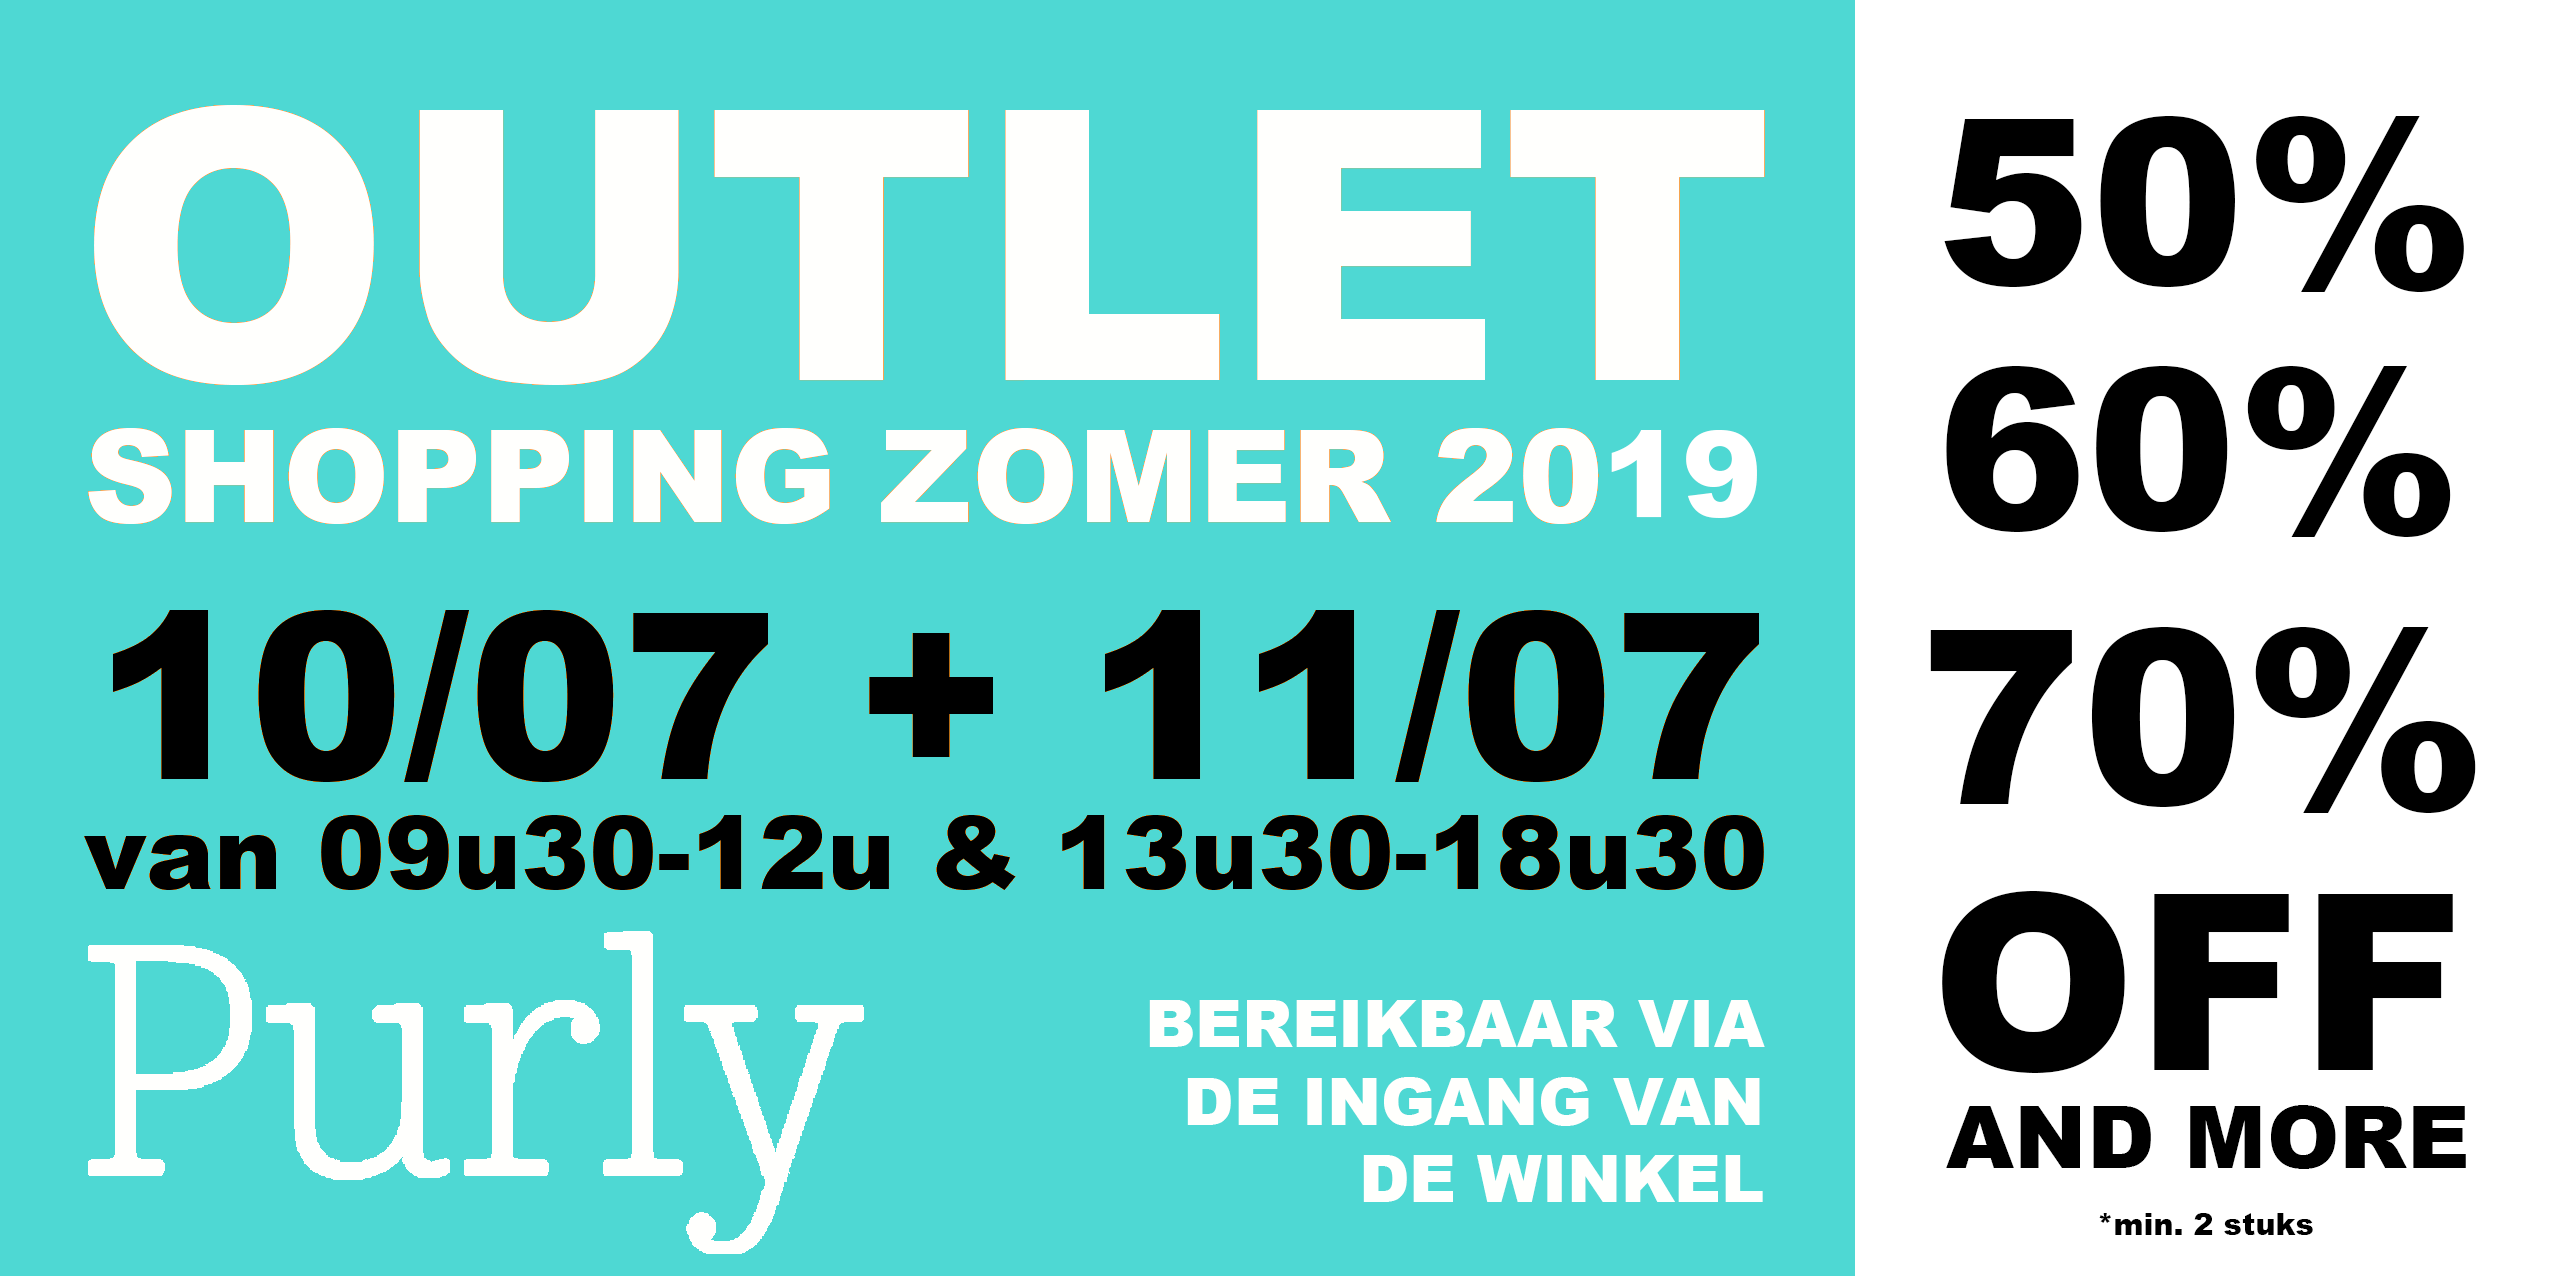 Facebook1 Outlet Zomer20 Purly Kopie